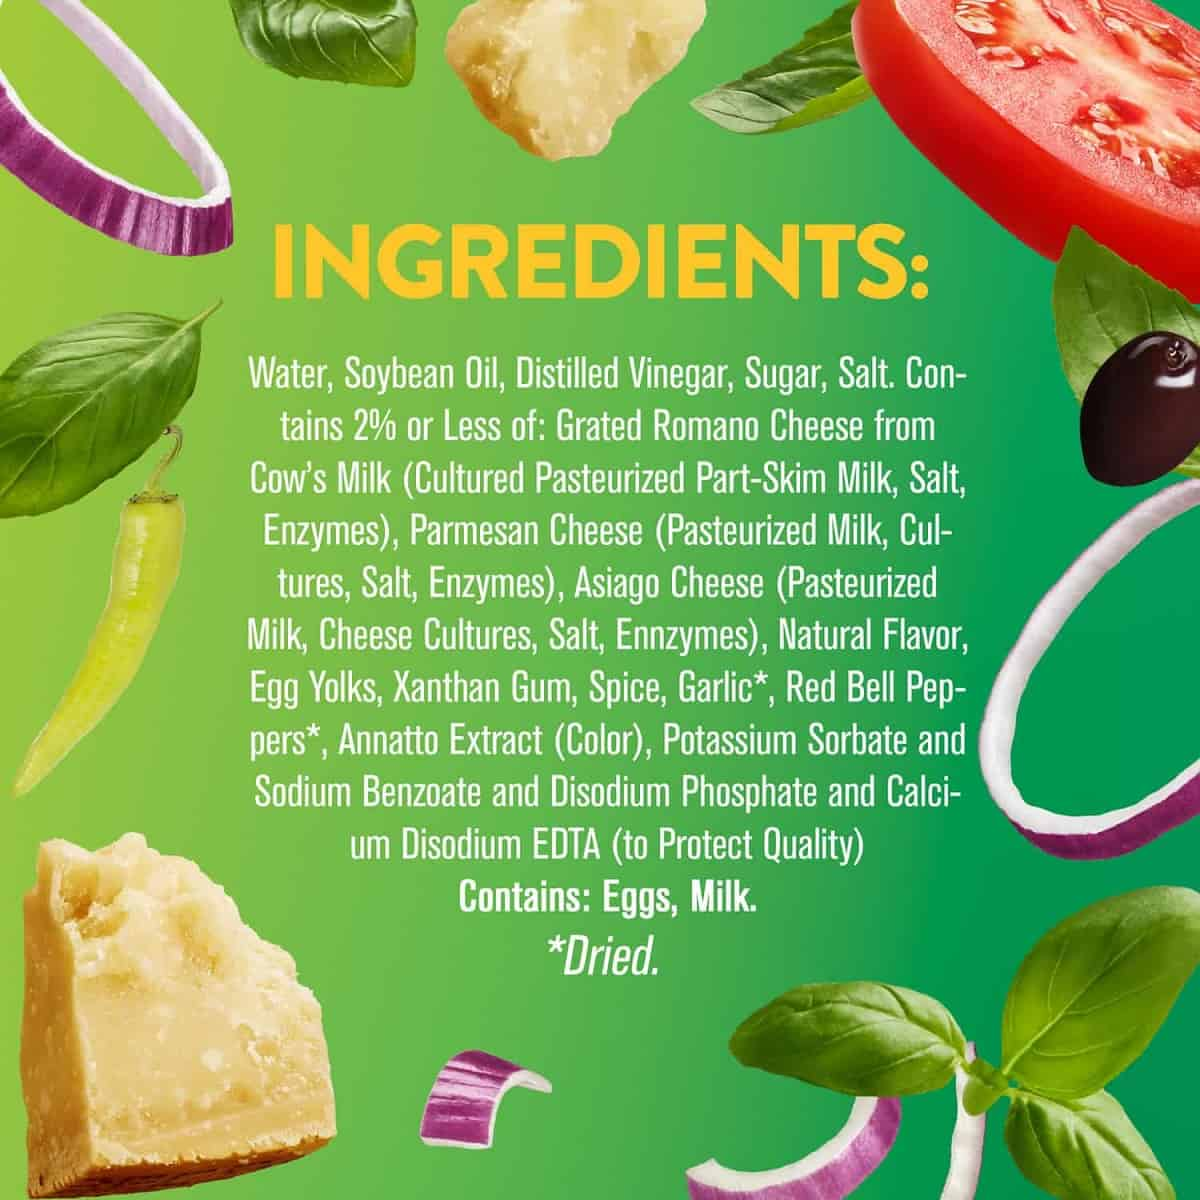 A list of unhealthy ingredients in commercial salad dressing.